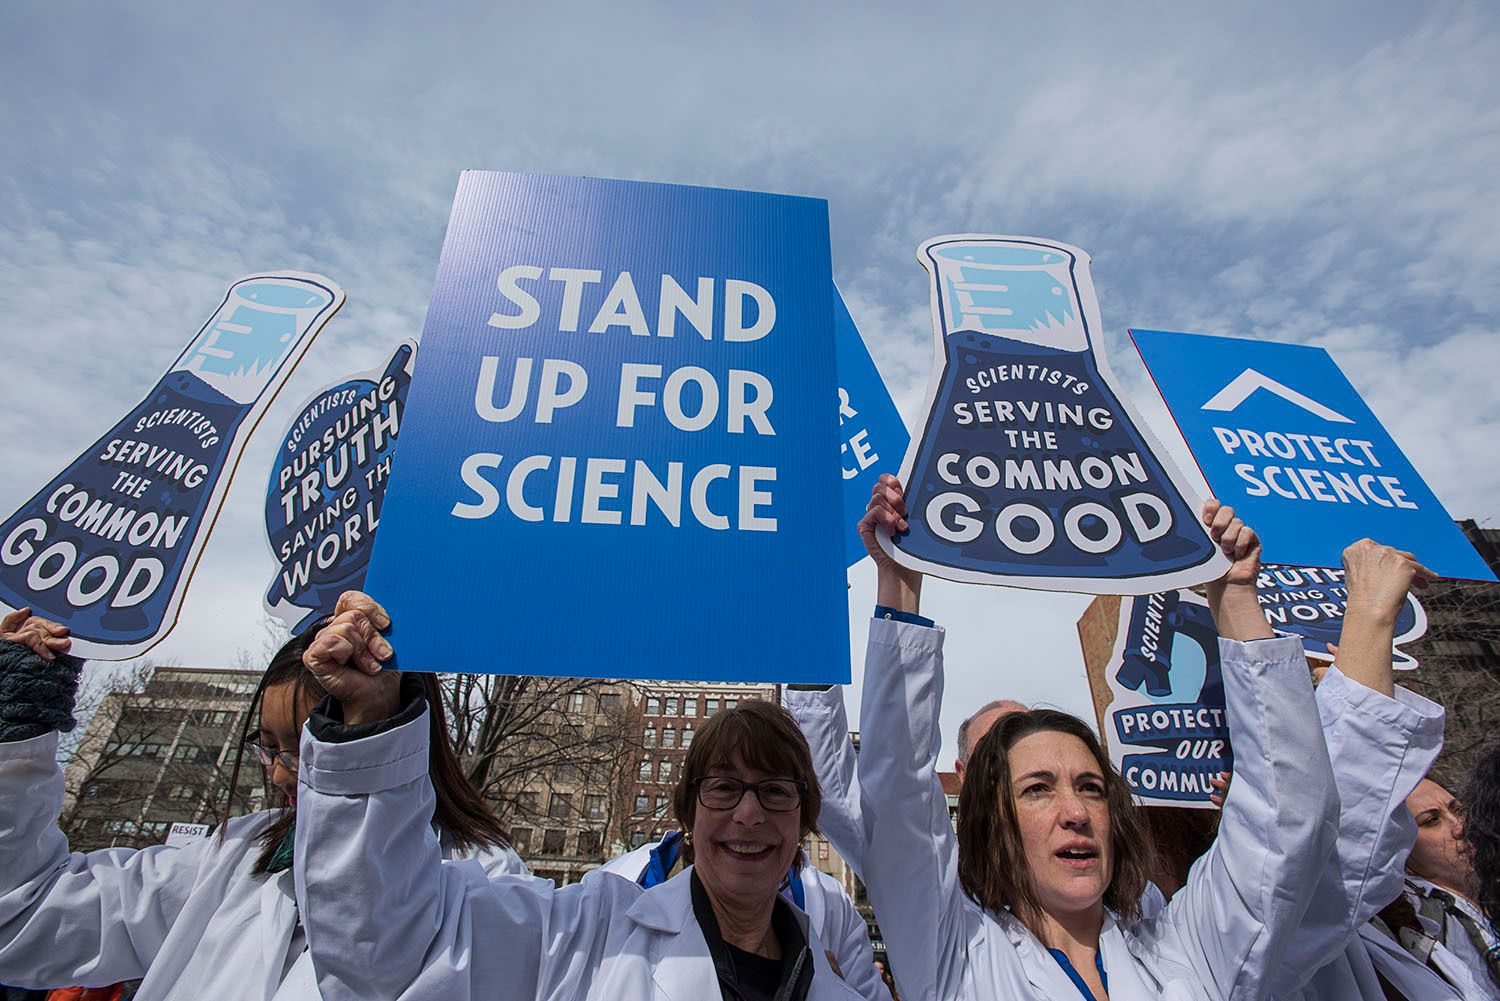 Boston: Stand up for Science